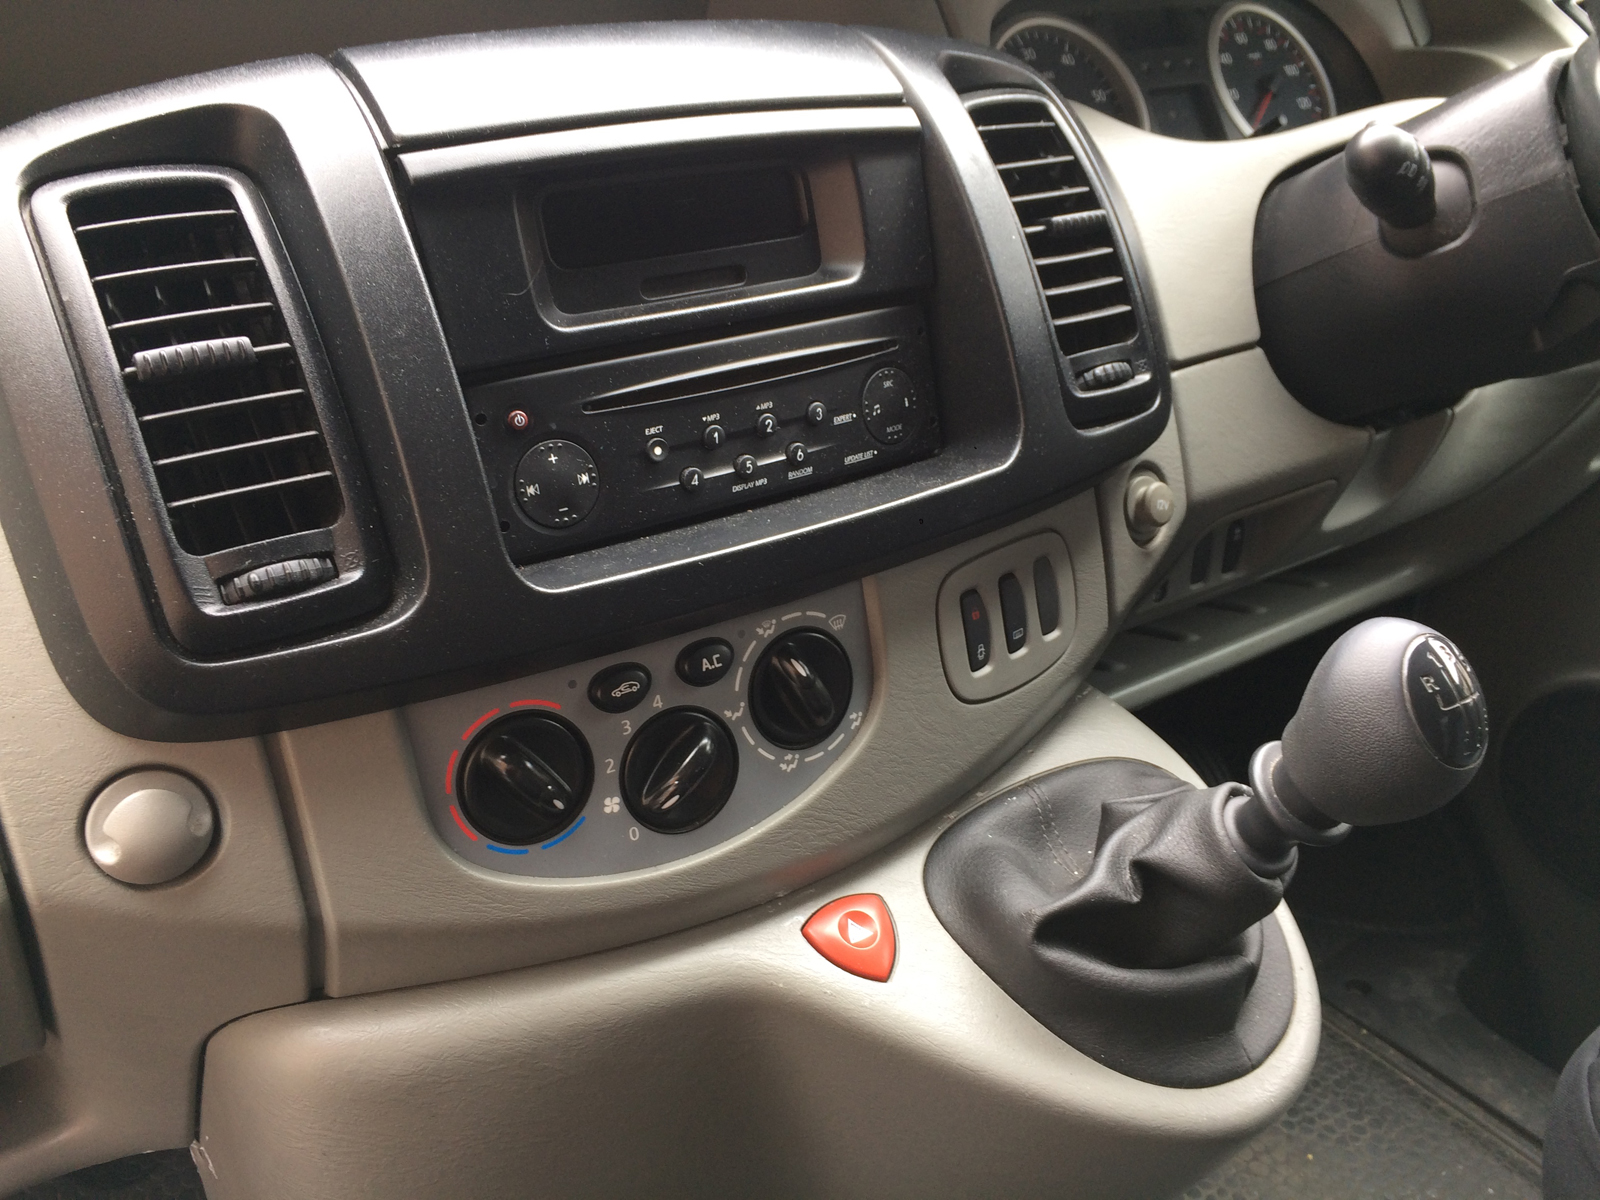 CD player, radio and AC in cab.. Nissan Primastar 2010